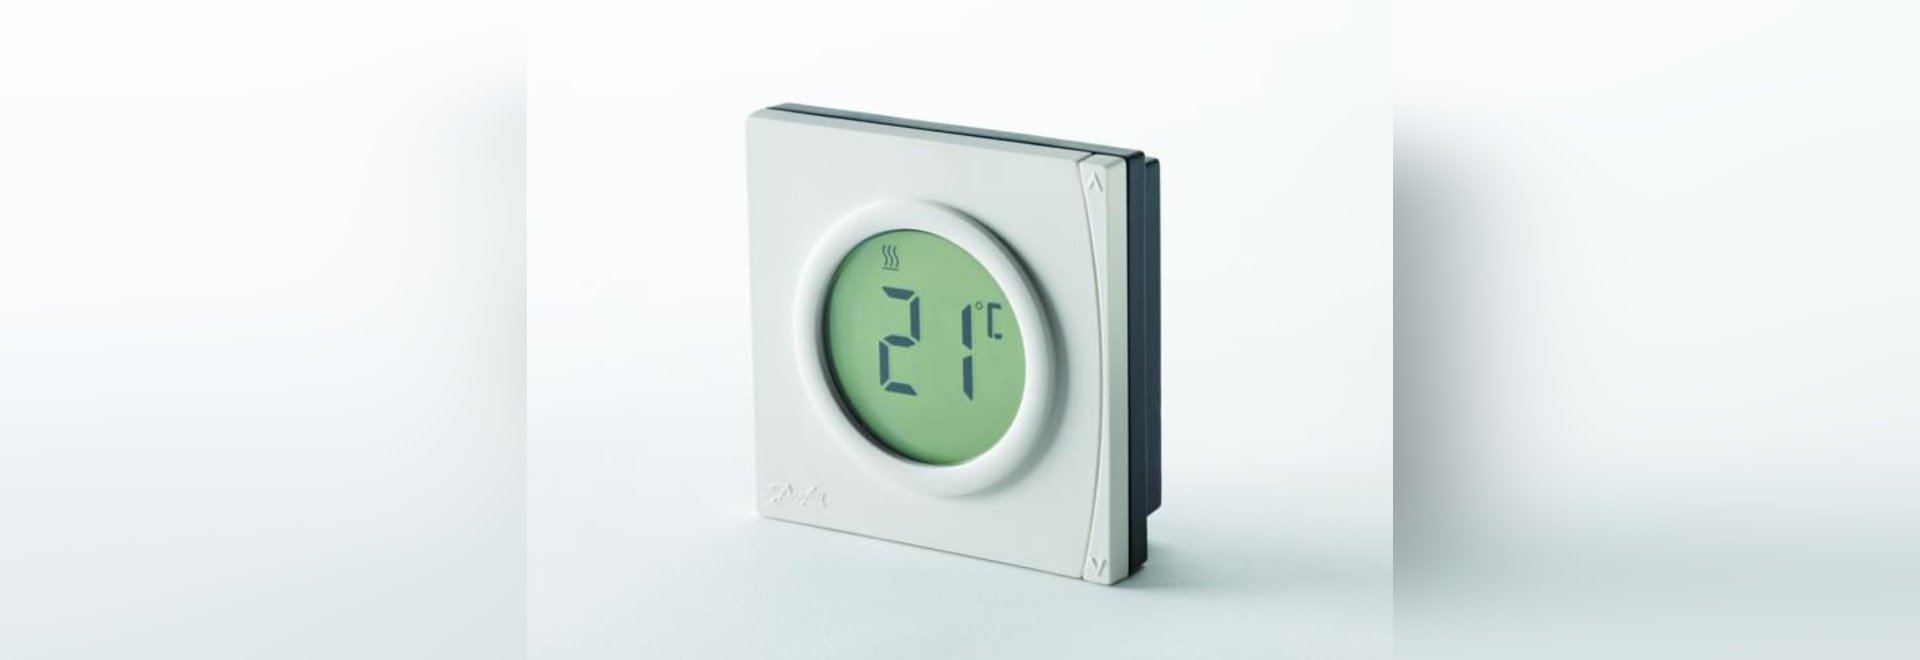 Thermostat danfoss